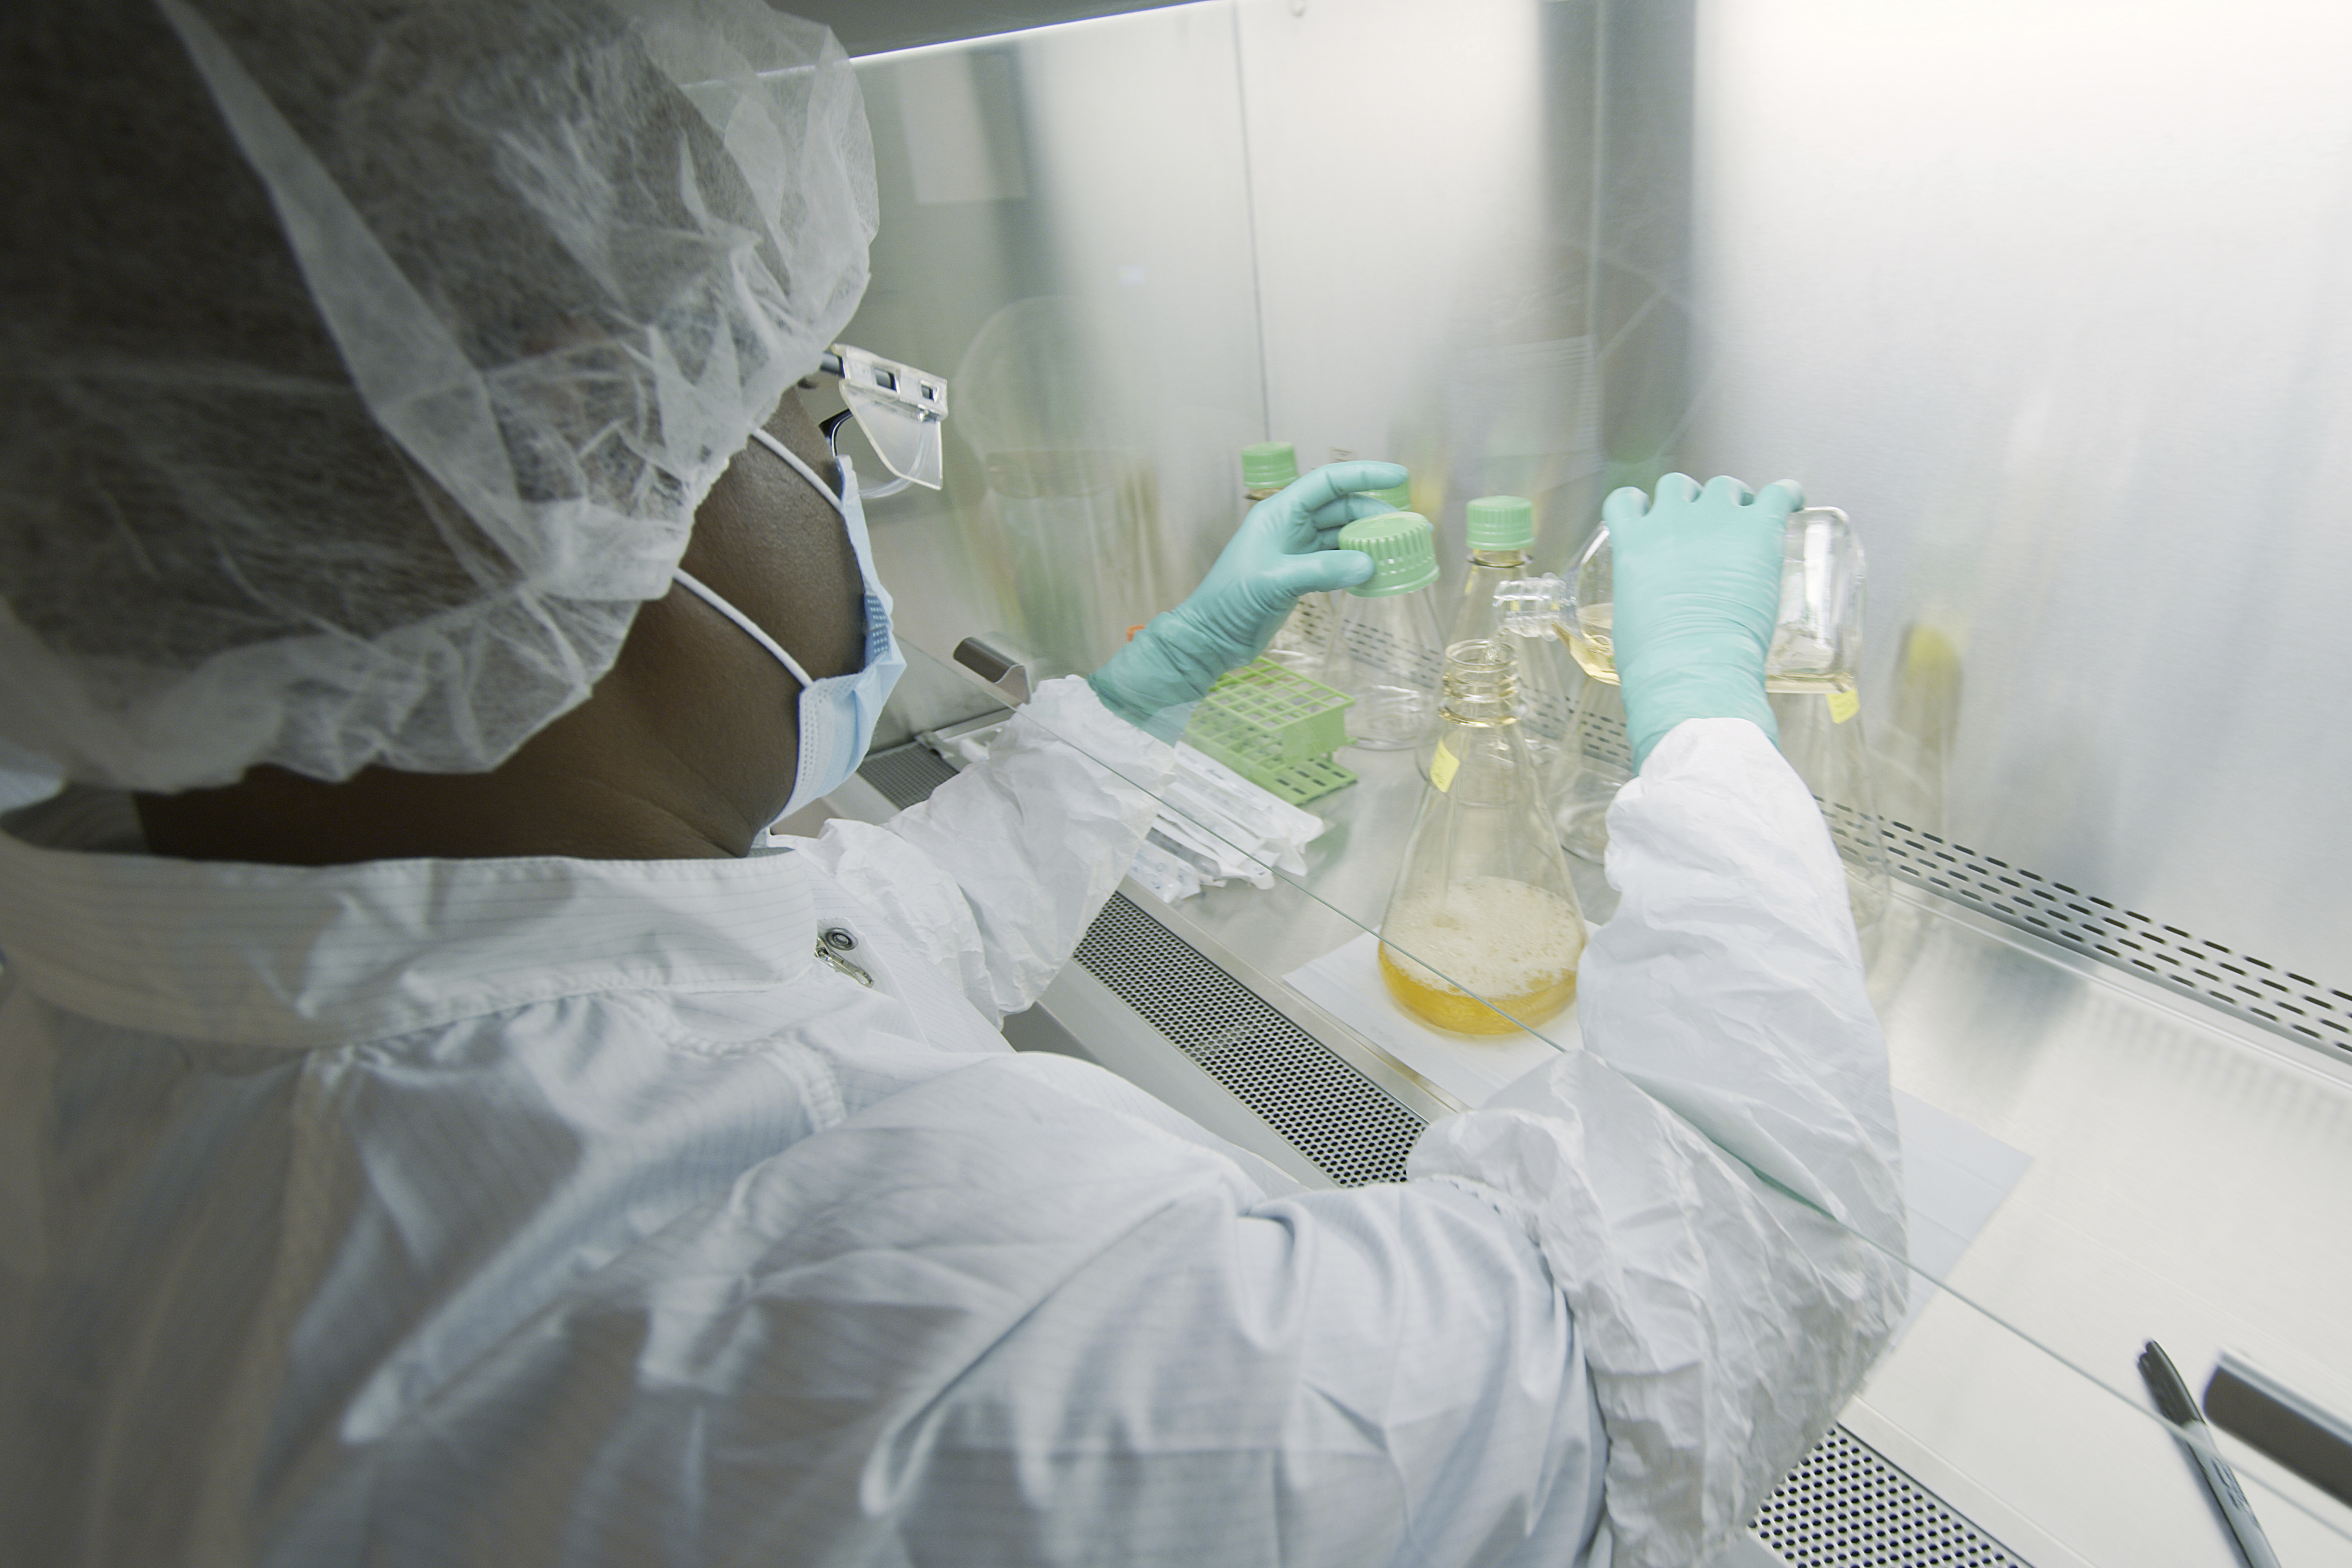 In this May 2020 photo provided by Eli Lilly, a researcher tests possible COVID-19 antibodies in a laboratory in Indianapolis. Antibodies are proteins the body makes when an infection occurs; they attach to a virus and help it be eliminated.